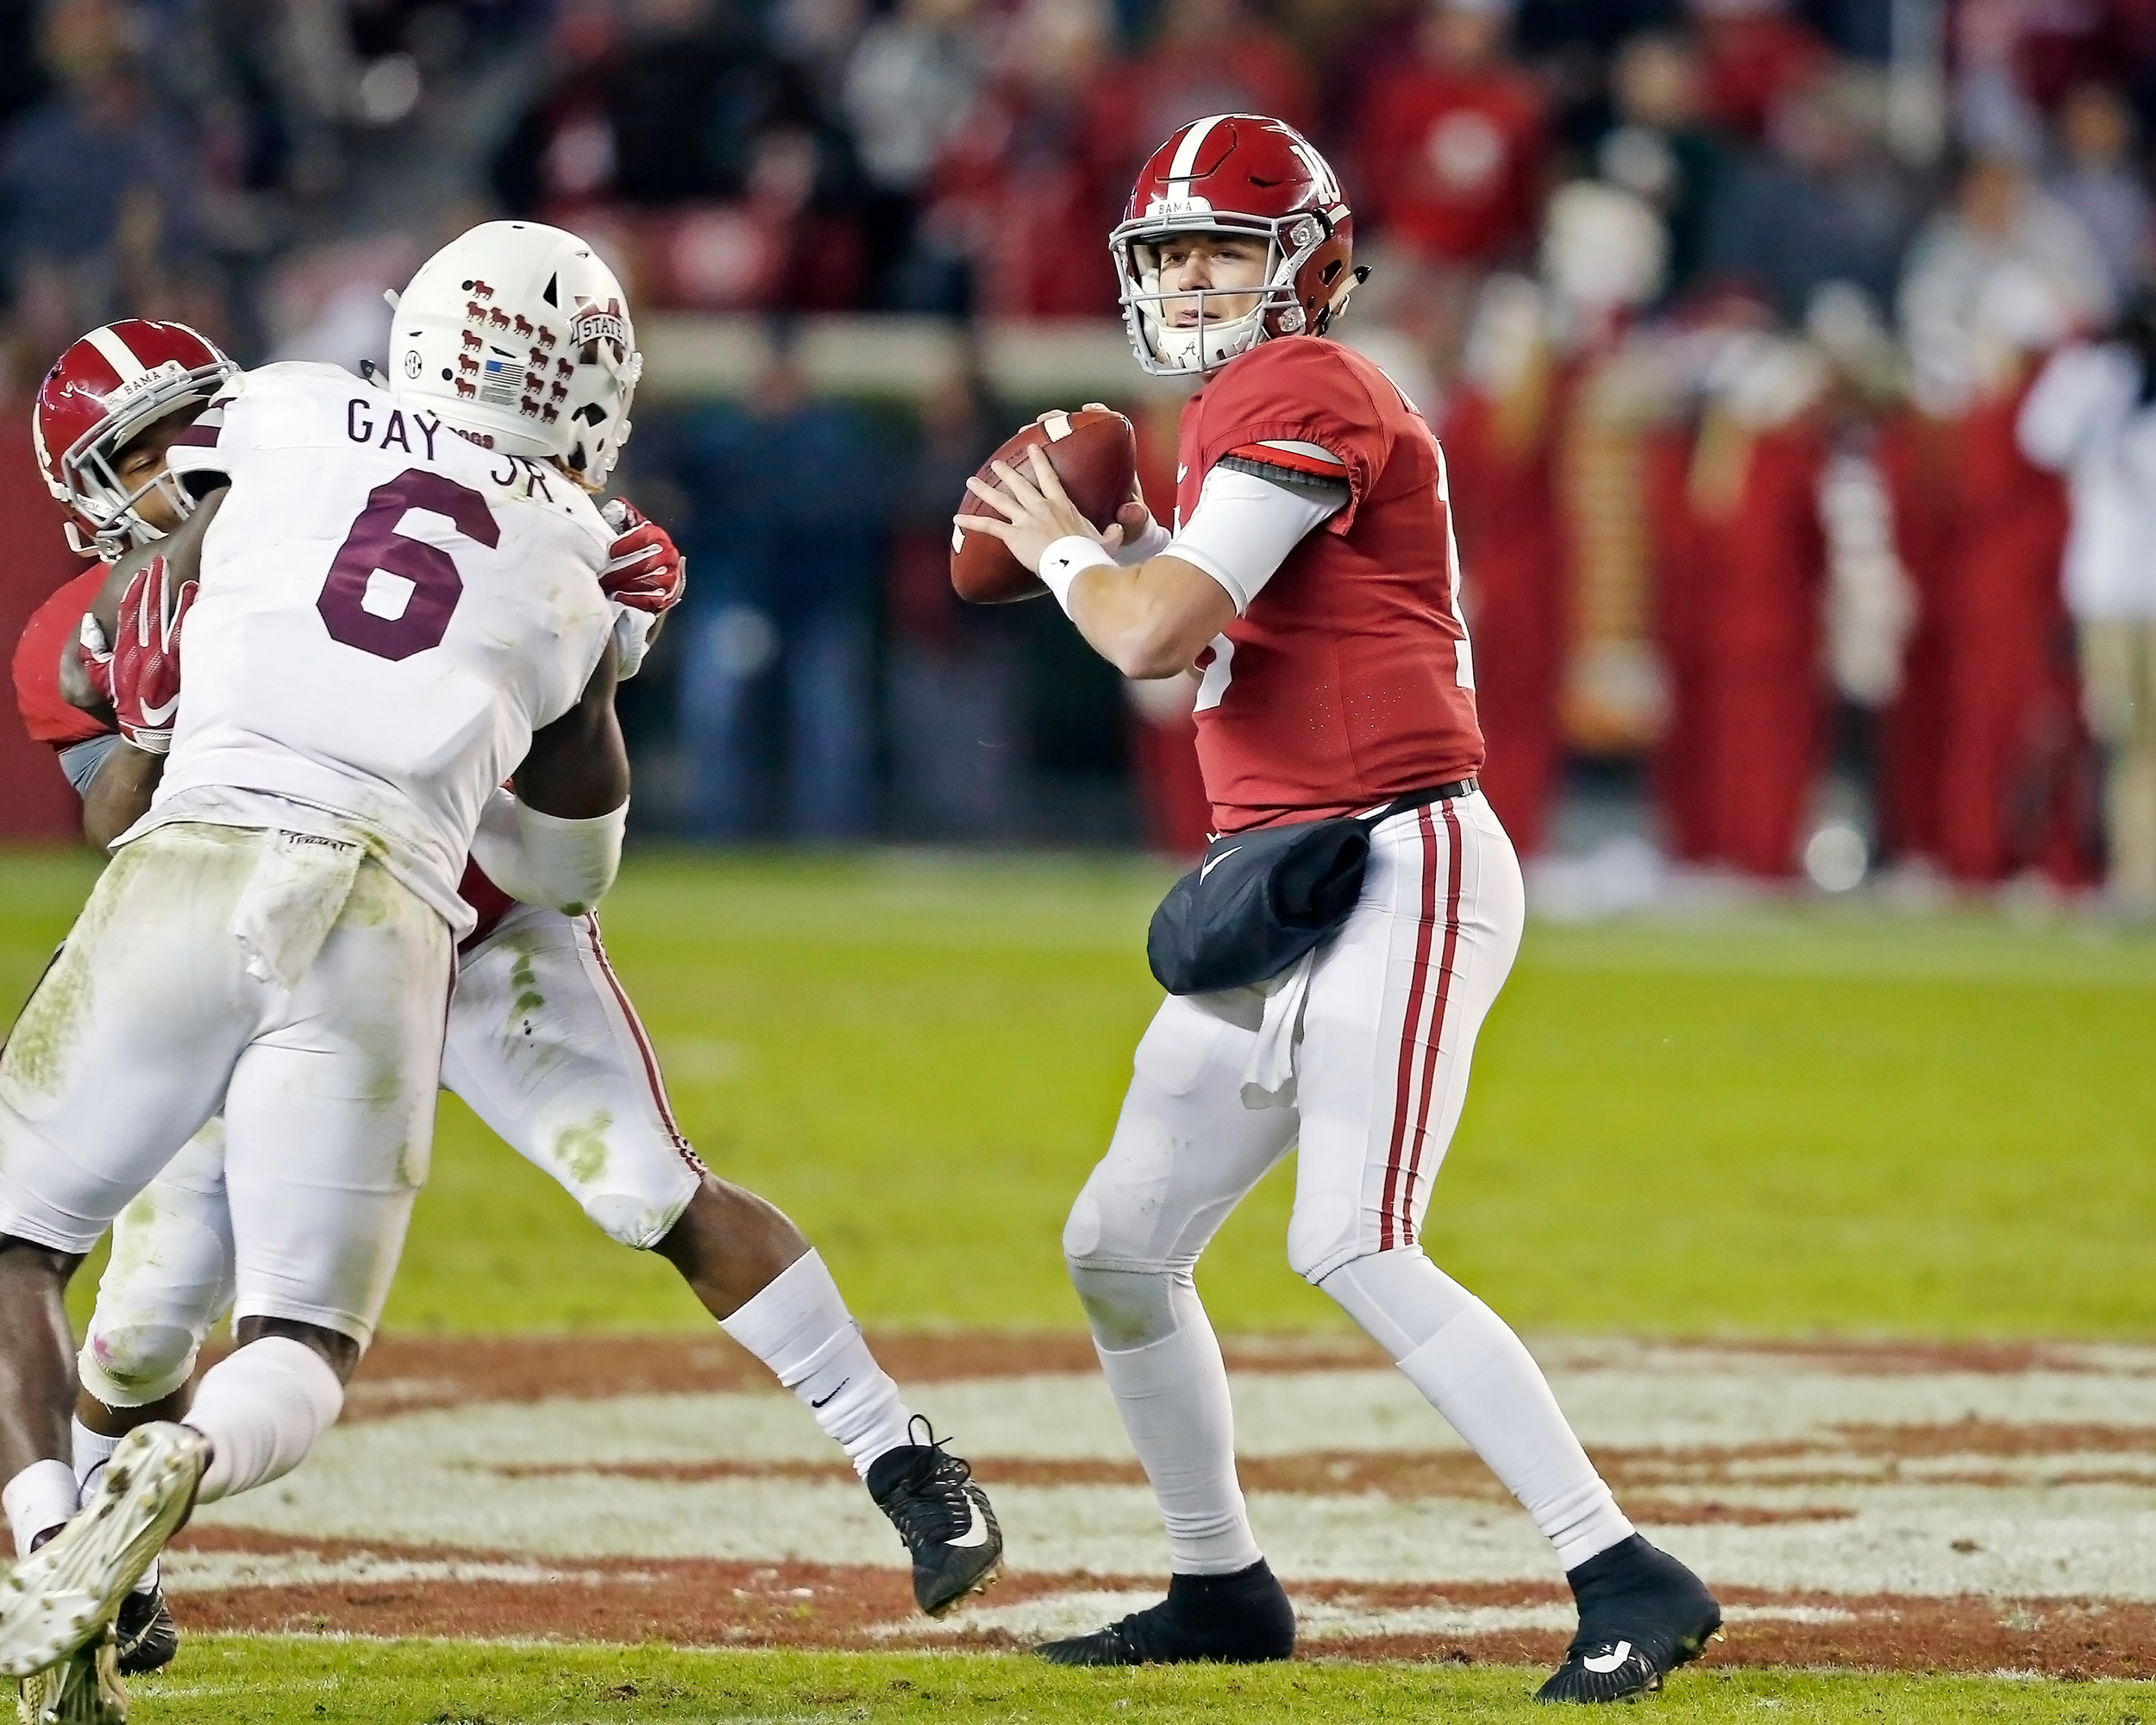 Alabama Crimson Tide quarterback Mac Jones (10) looks for a receiver during the second half of the game between Mississippi State and the University of Alabama at Bryant-Denny Stadium in Tuscaloosa, Al. Credit: Jason Clark / Daily Mountain Eagle